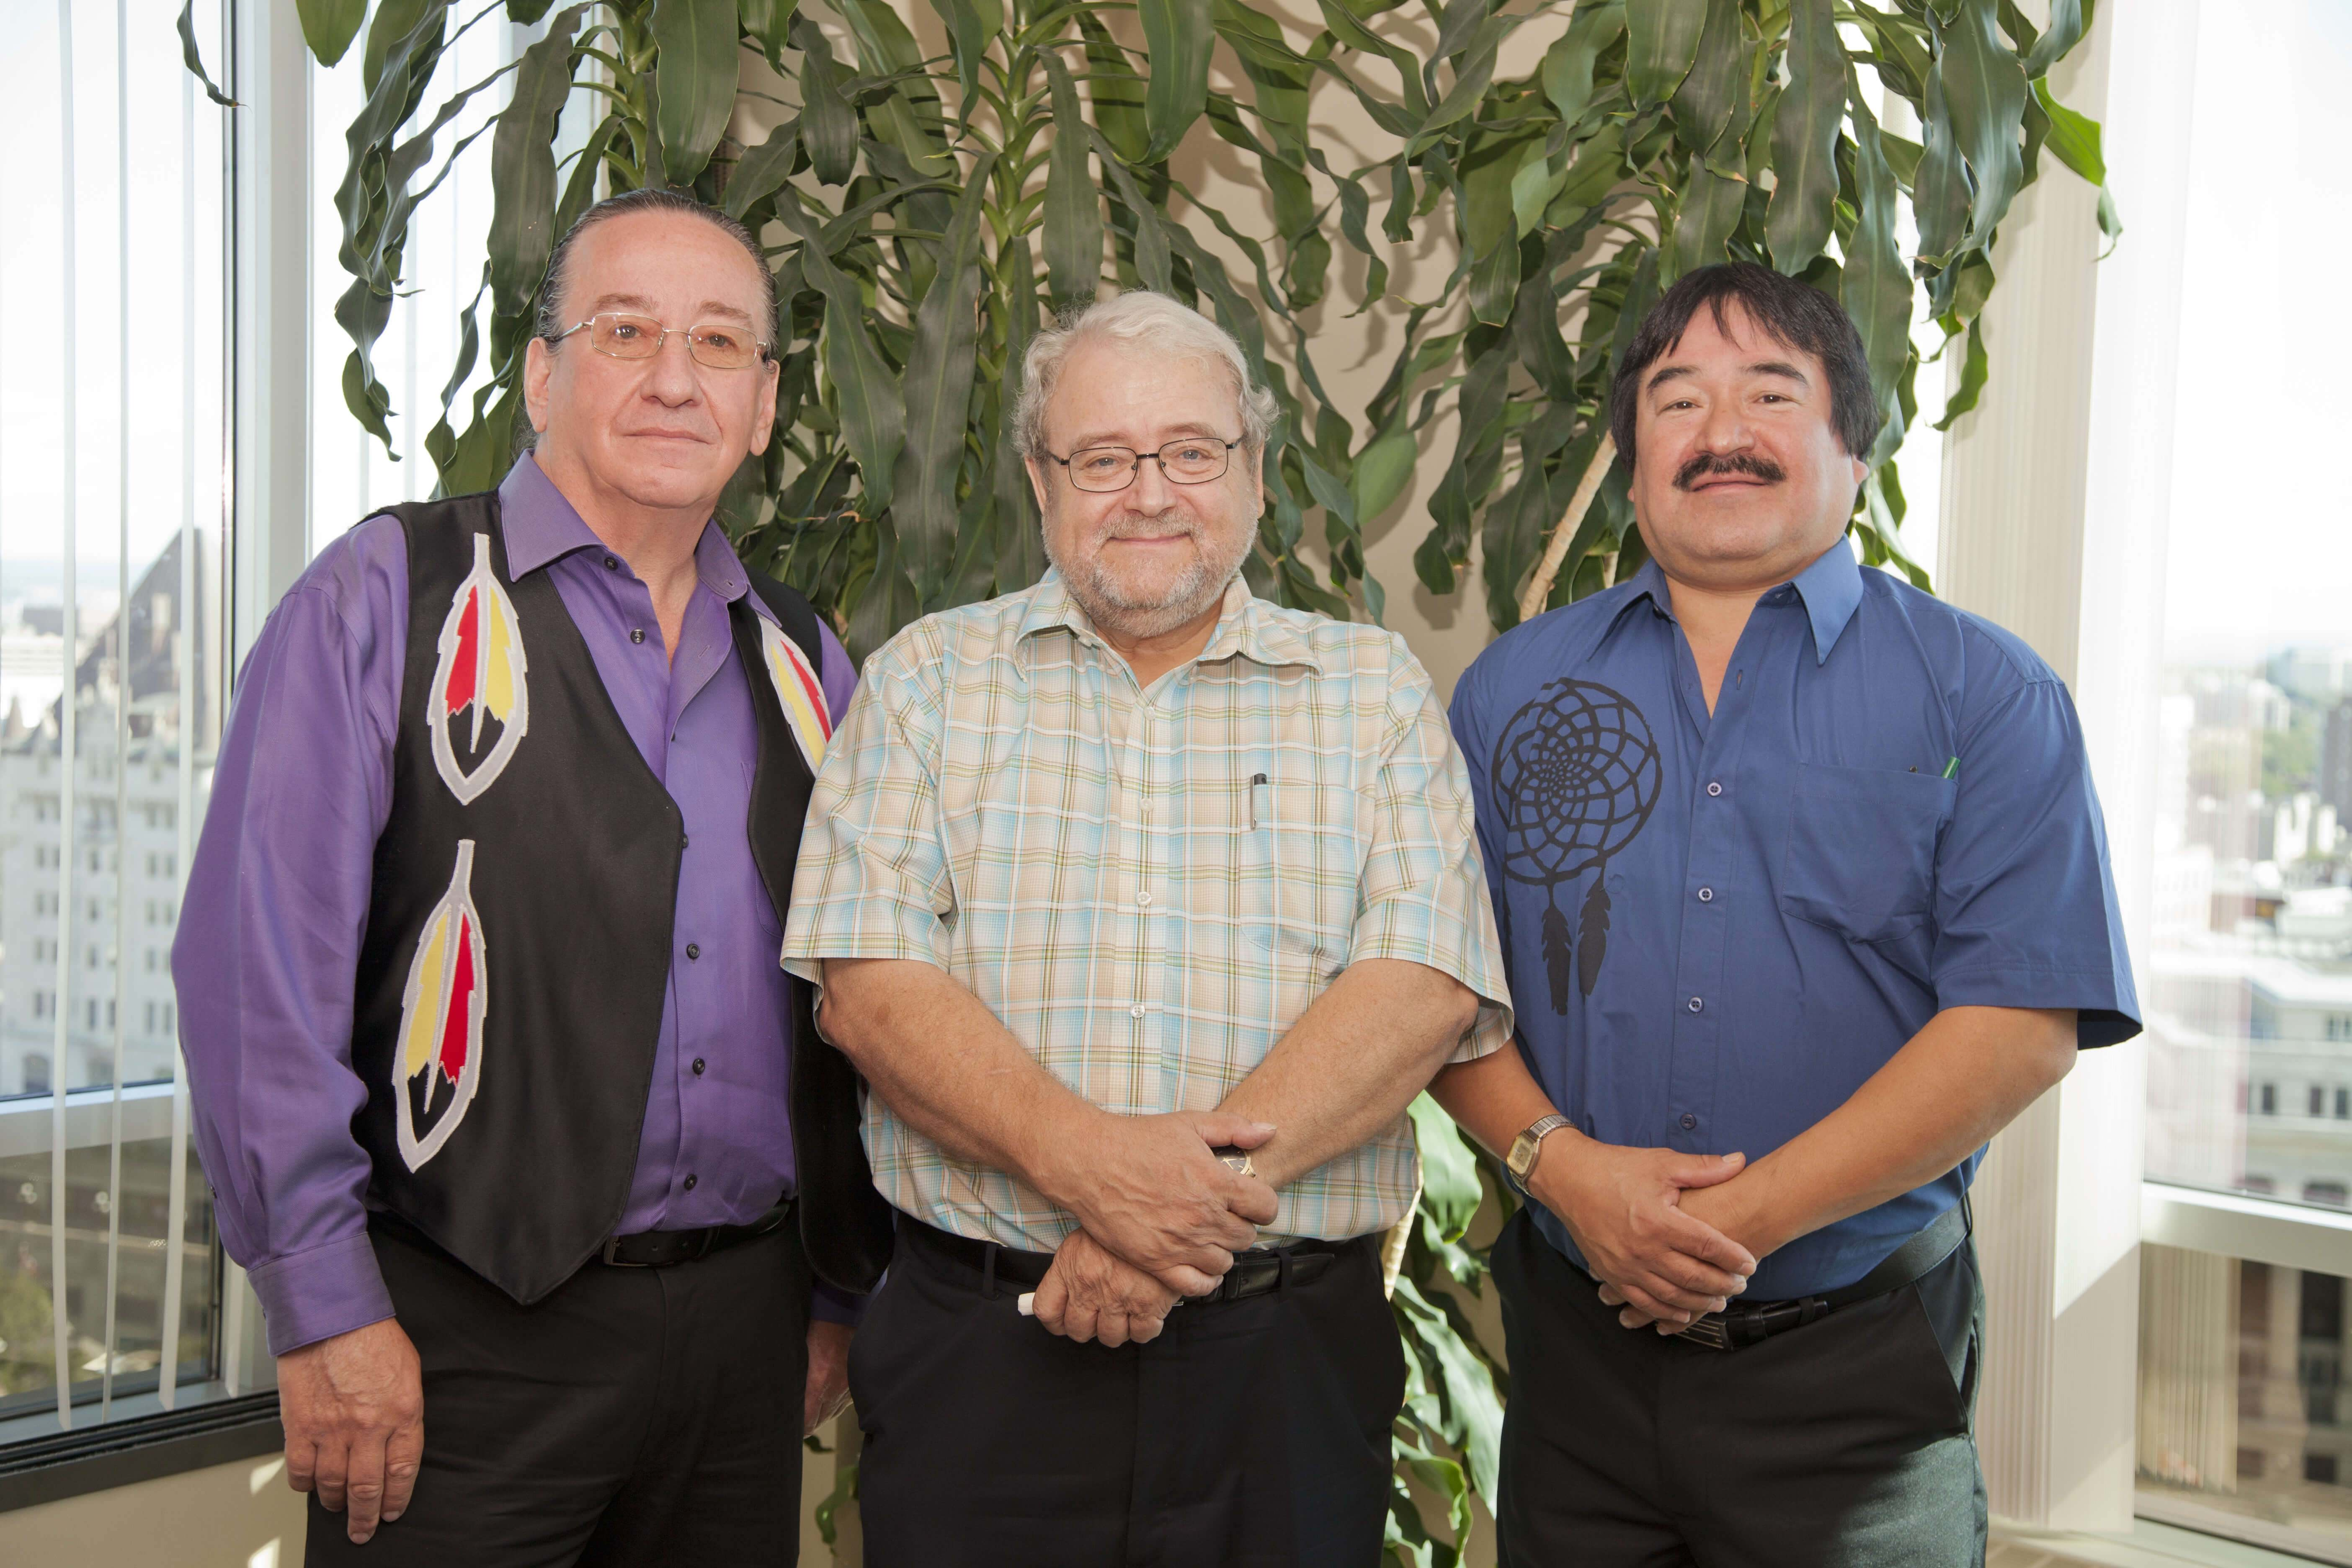 Ian with the Kitigan Zibi Anishinabeg and the Algonquins of Pikwakanagan First Nation Chiefs